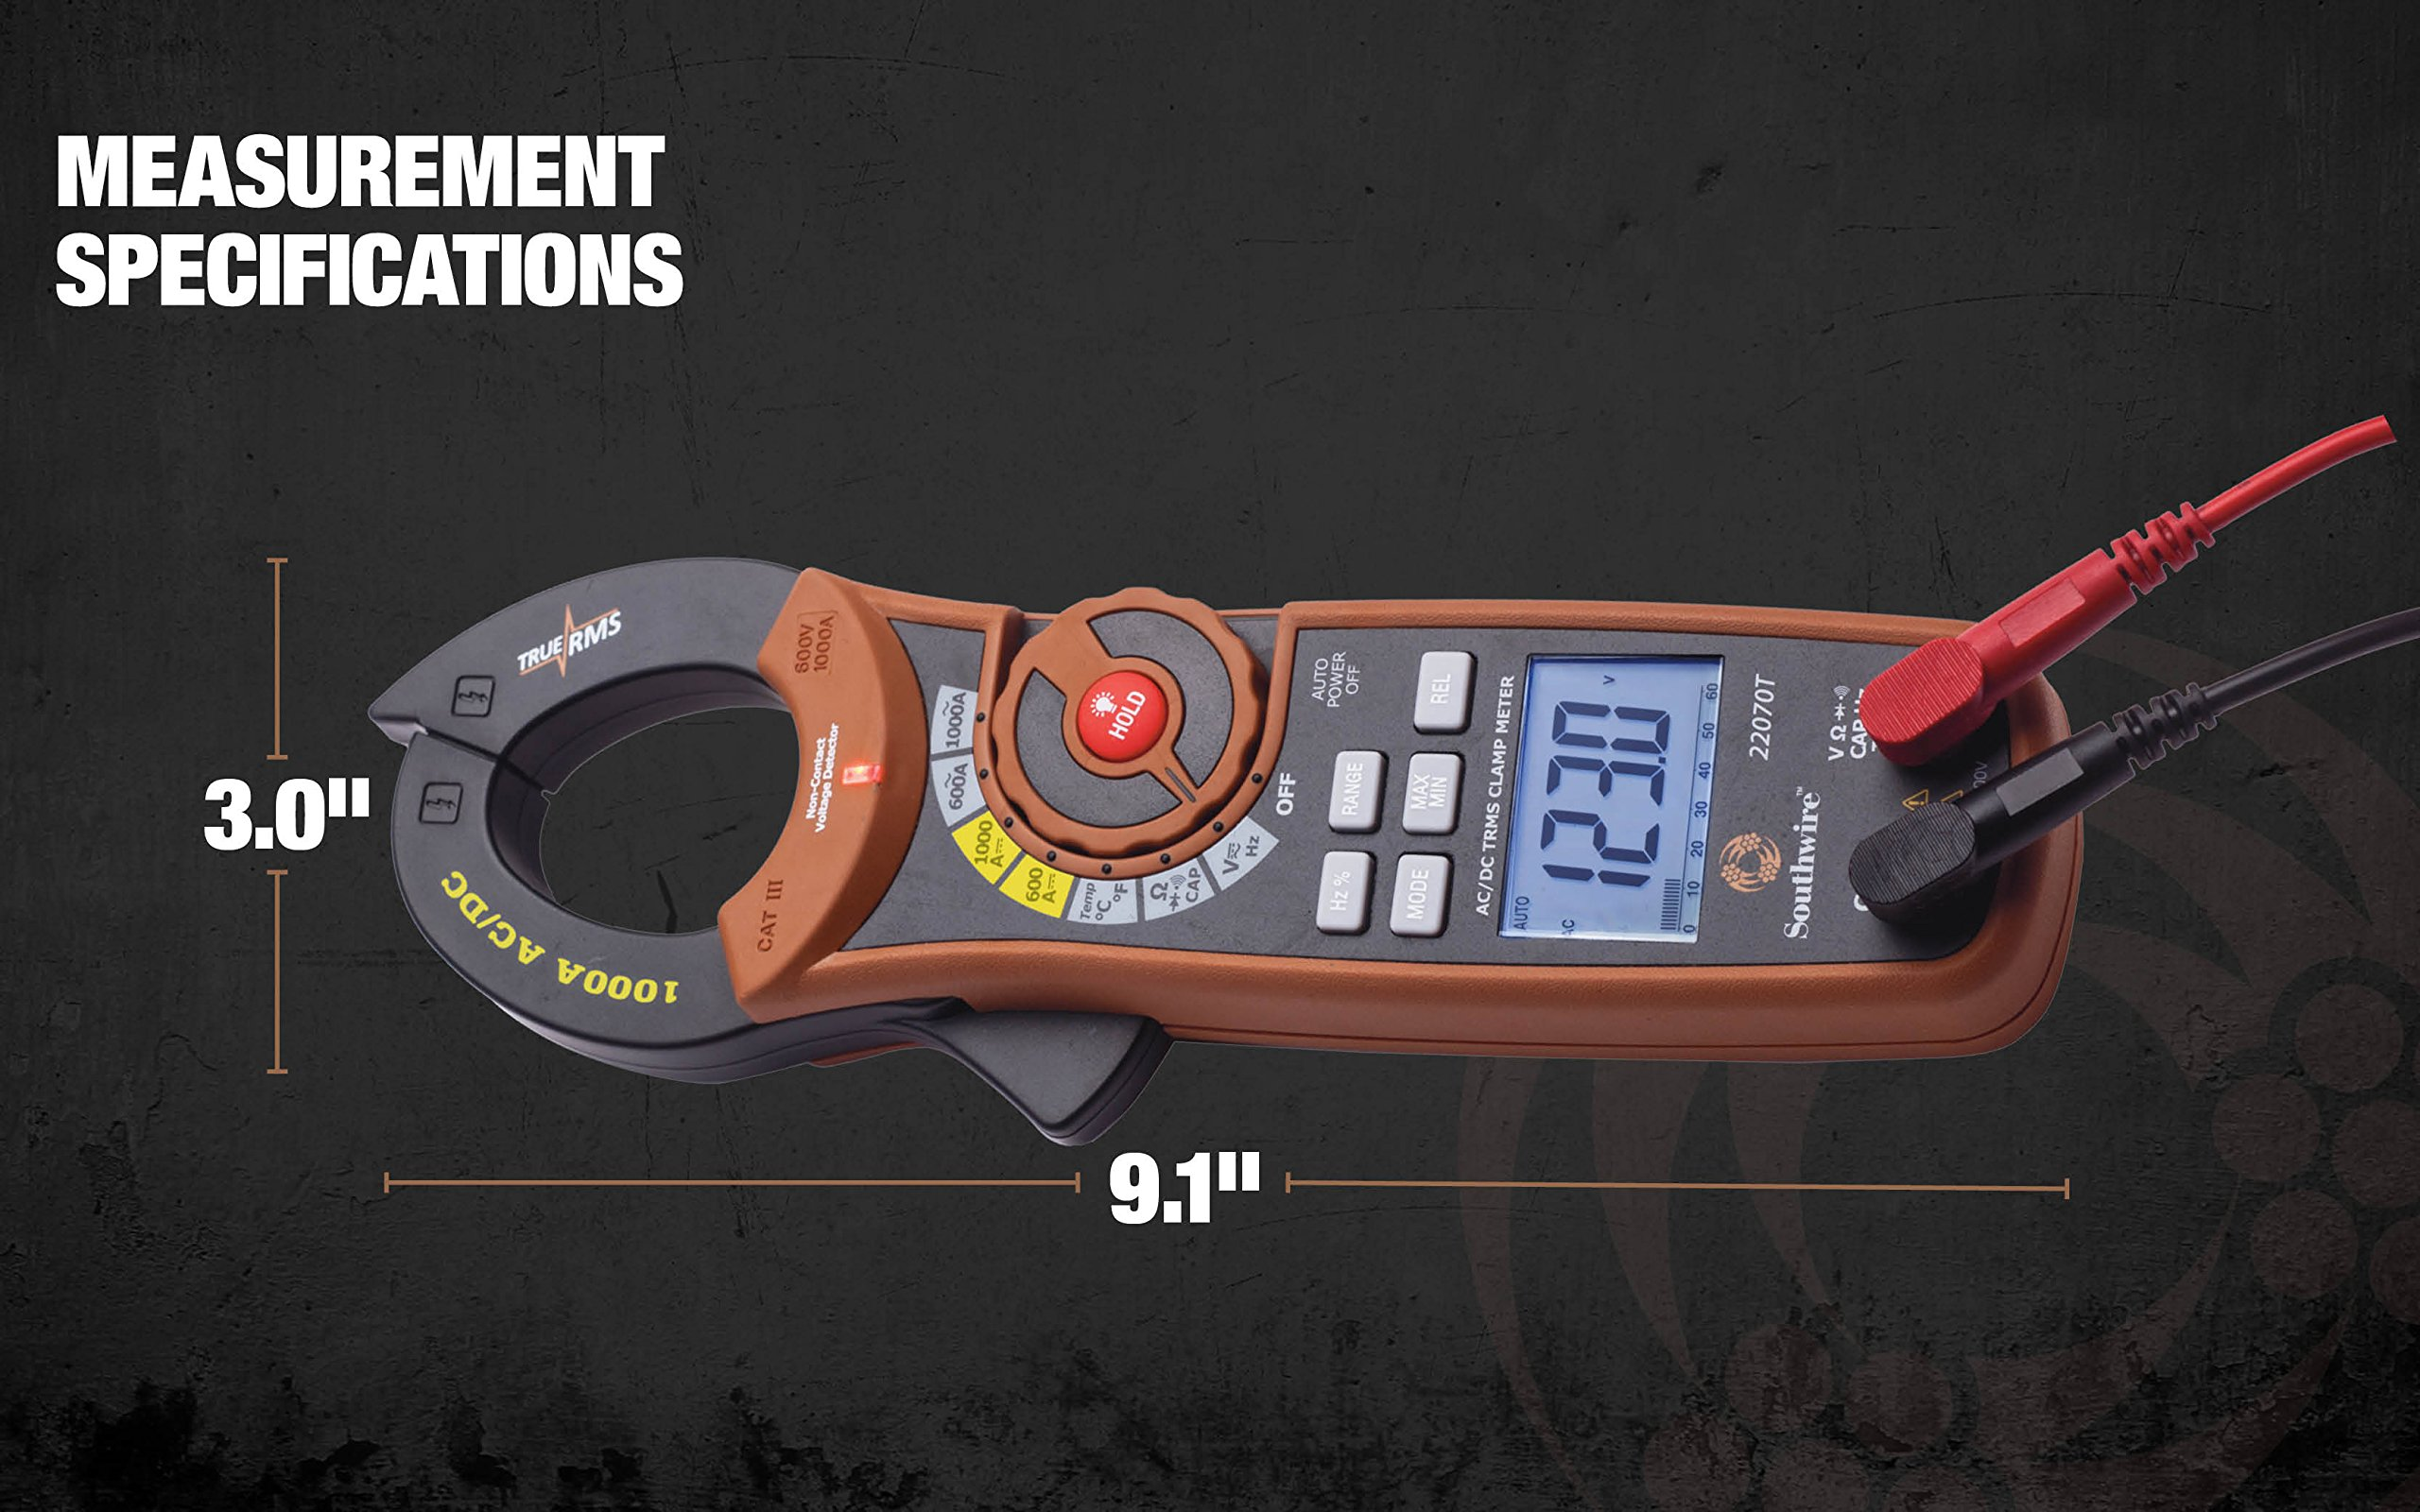 Southwire Tools & Equipment 22070T 1000A AC/DC TrueRMS Clamp Meter, Multimeter with 12 Functions by Southwire Tools & Equipment